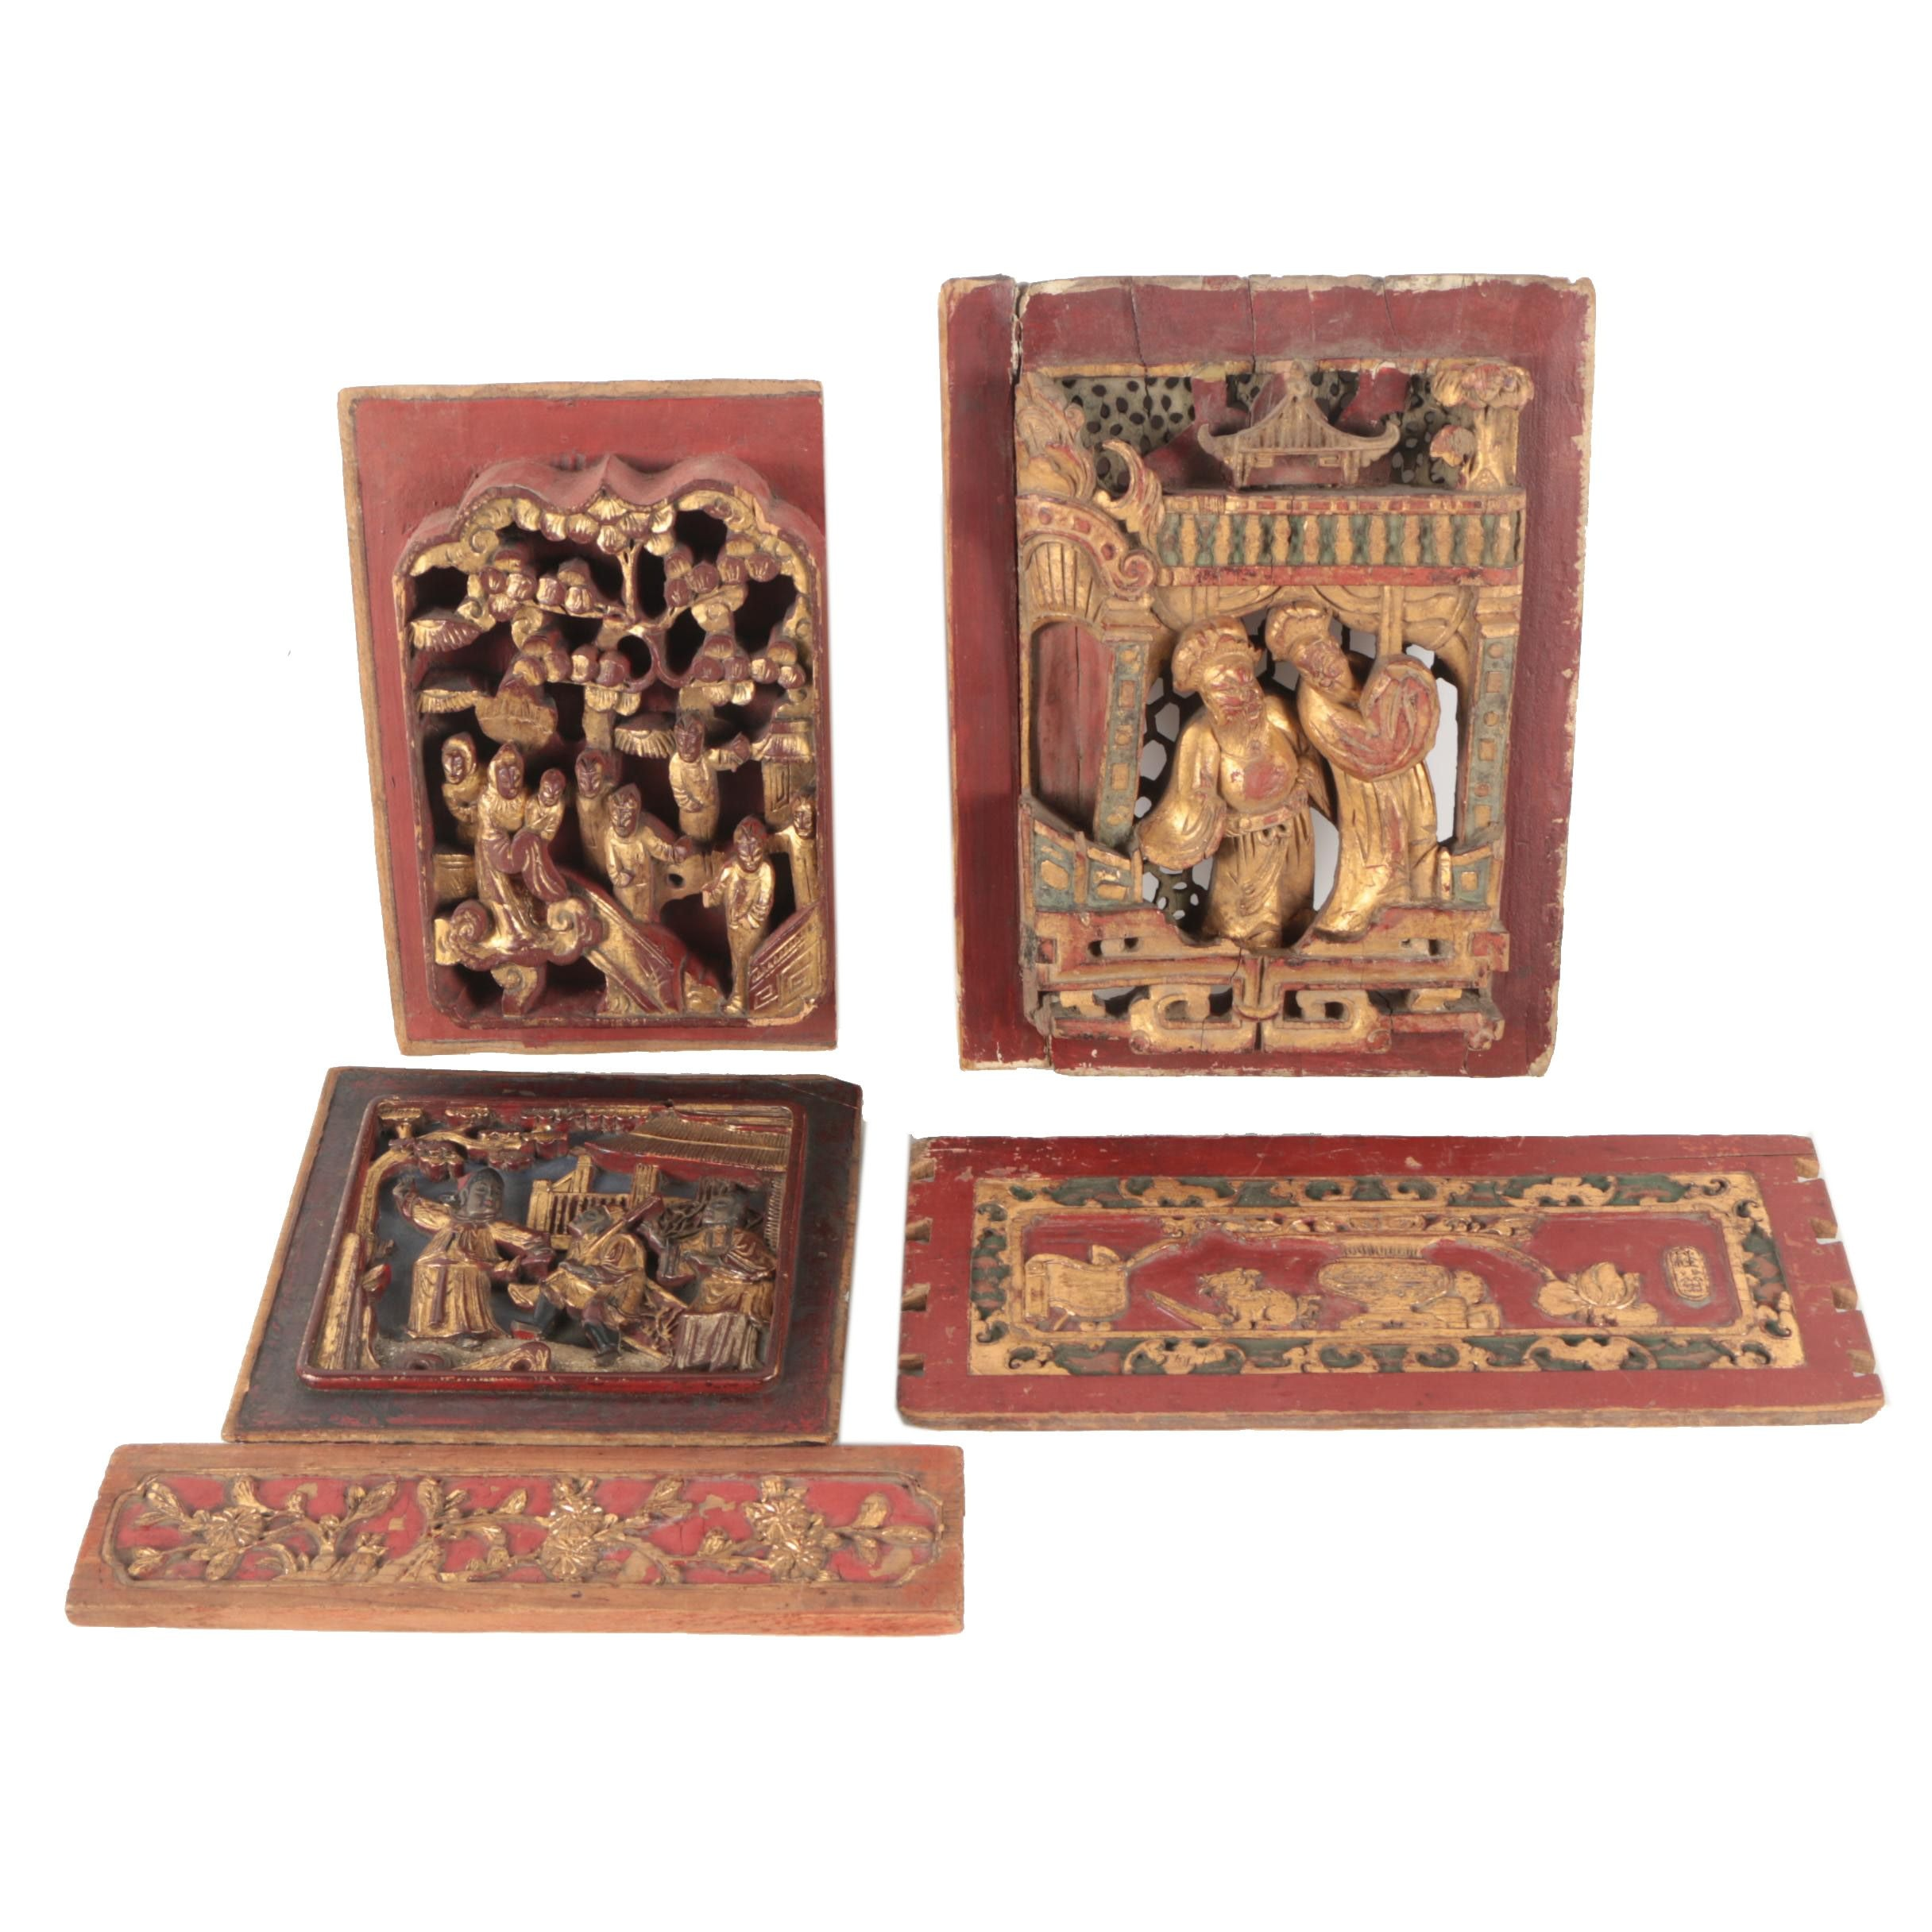 Chinese Polychrome and Gilt Wood Carvings and Architectural Fragments